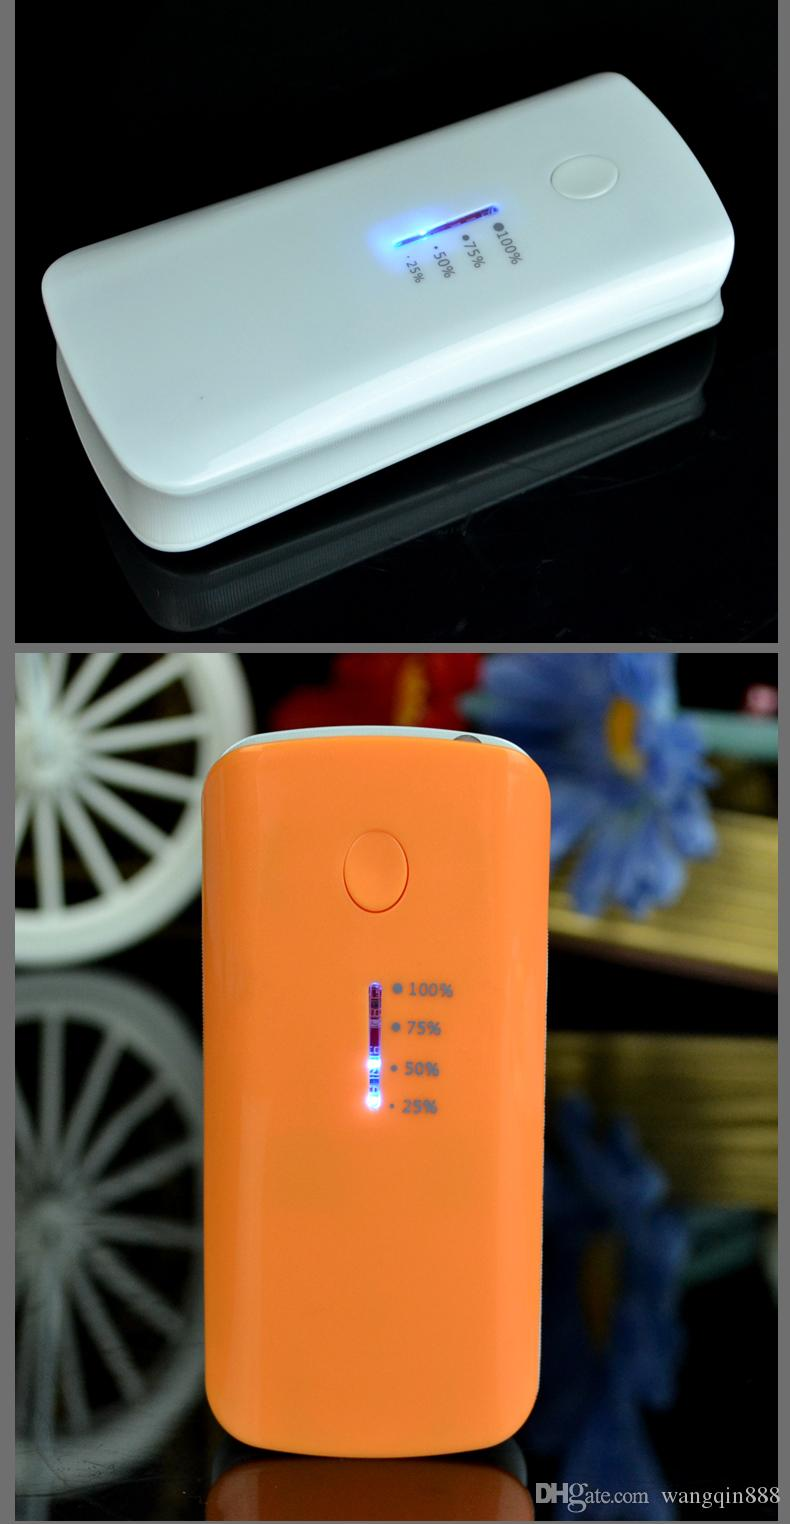 powerbank 5600mAh Portable USB Power Bank External Backup Battery Charger Emergency Travel Power Pack for Mobile Phone iPhone